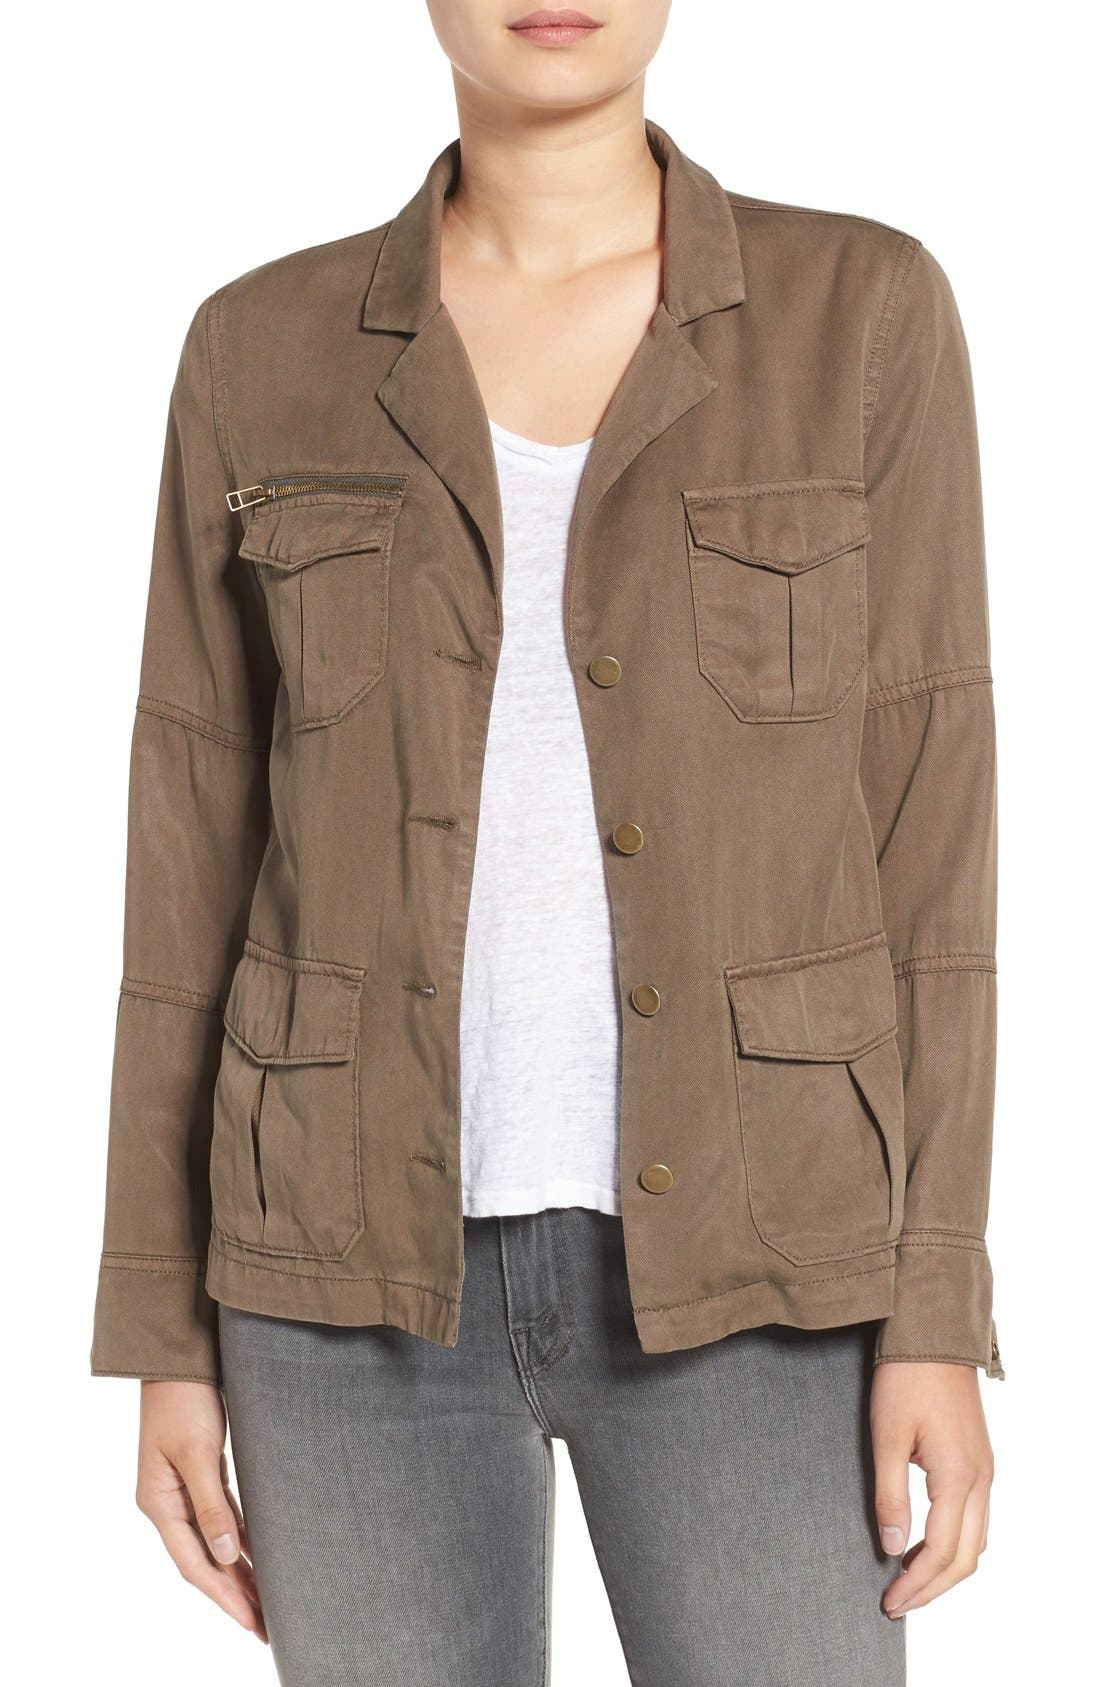 Alternate Image 1 Selected - Pam & Gela Embroidered Military Jacket